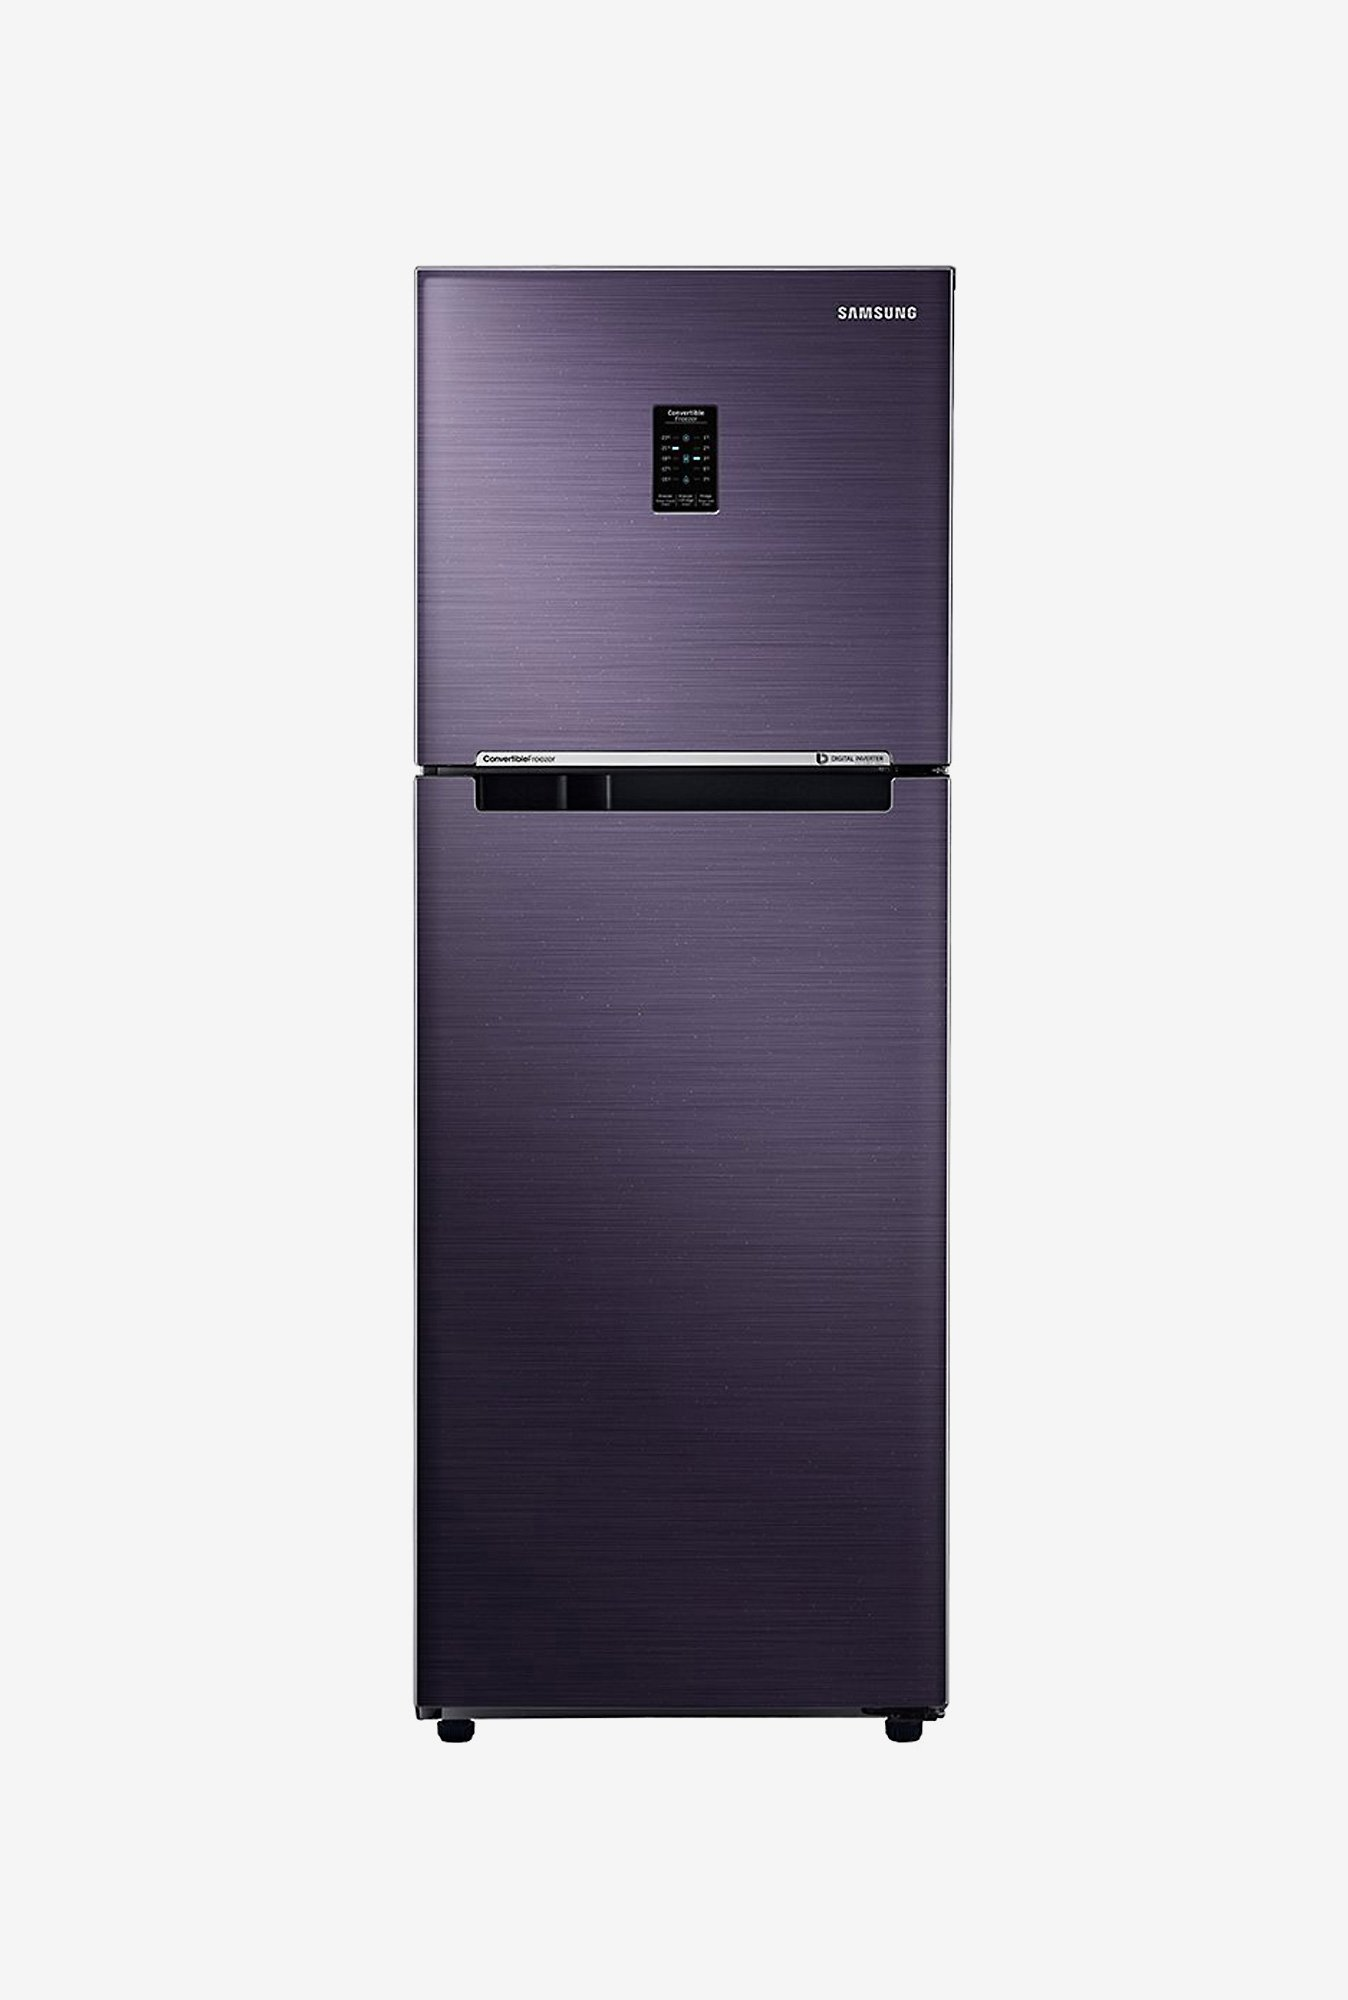 Where Can I Buy Appliances Home Appliances Buy Home Appliances Online At Best Price In